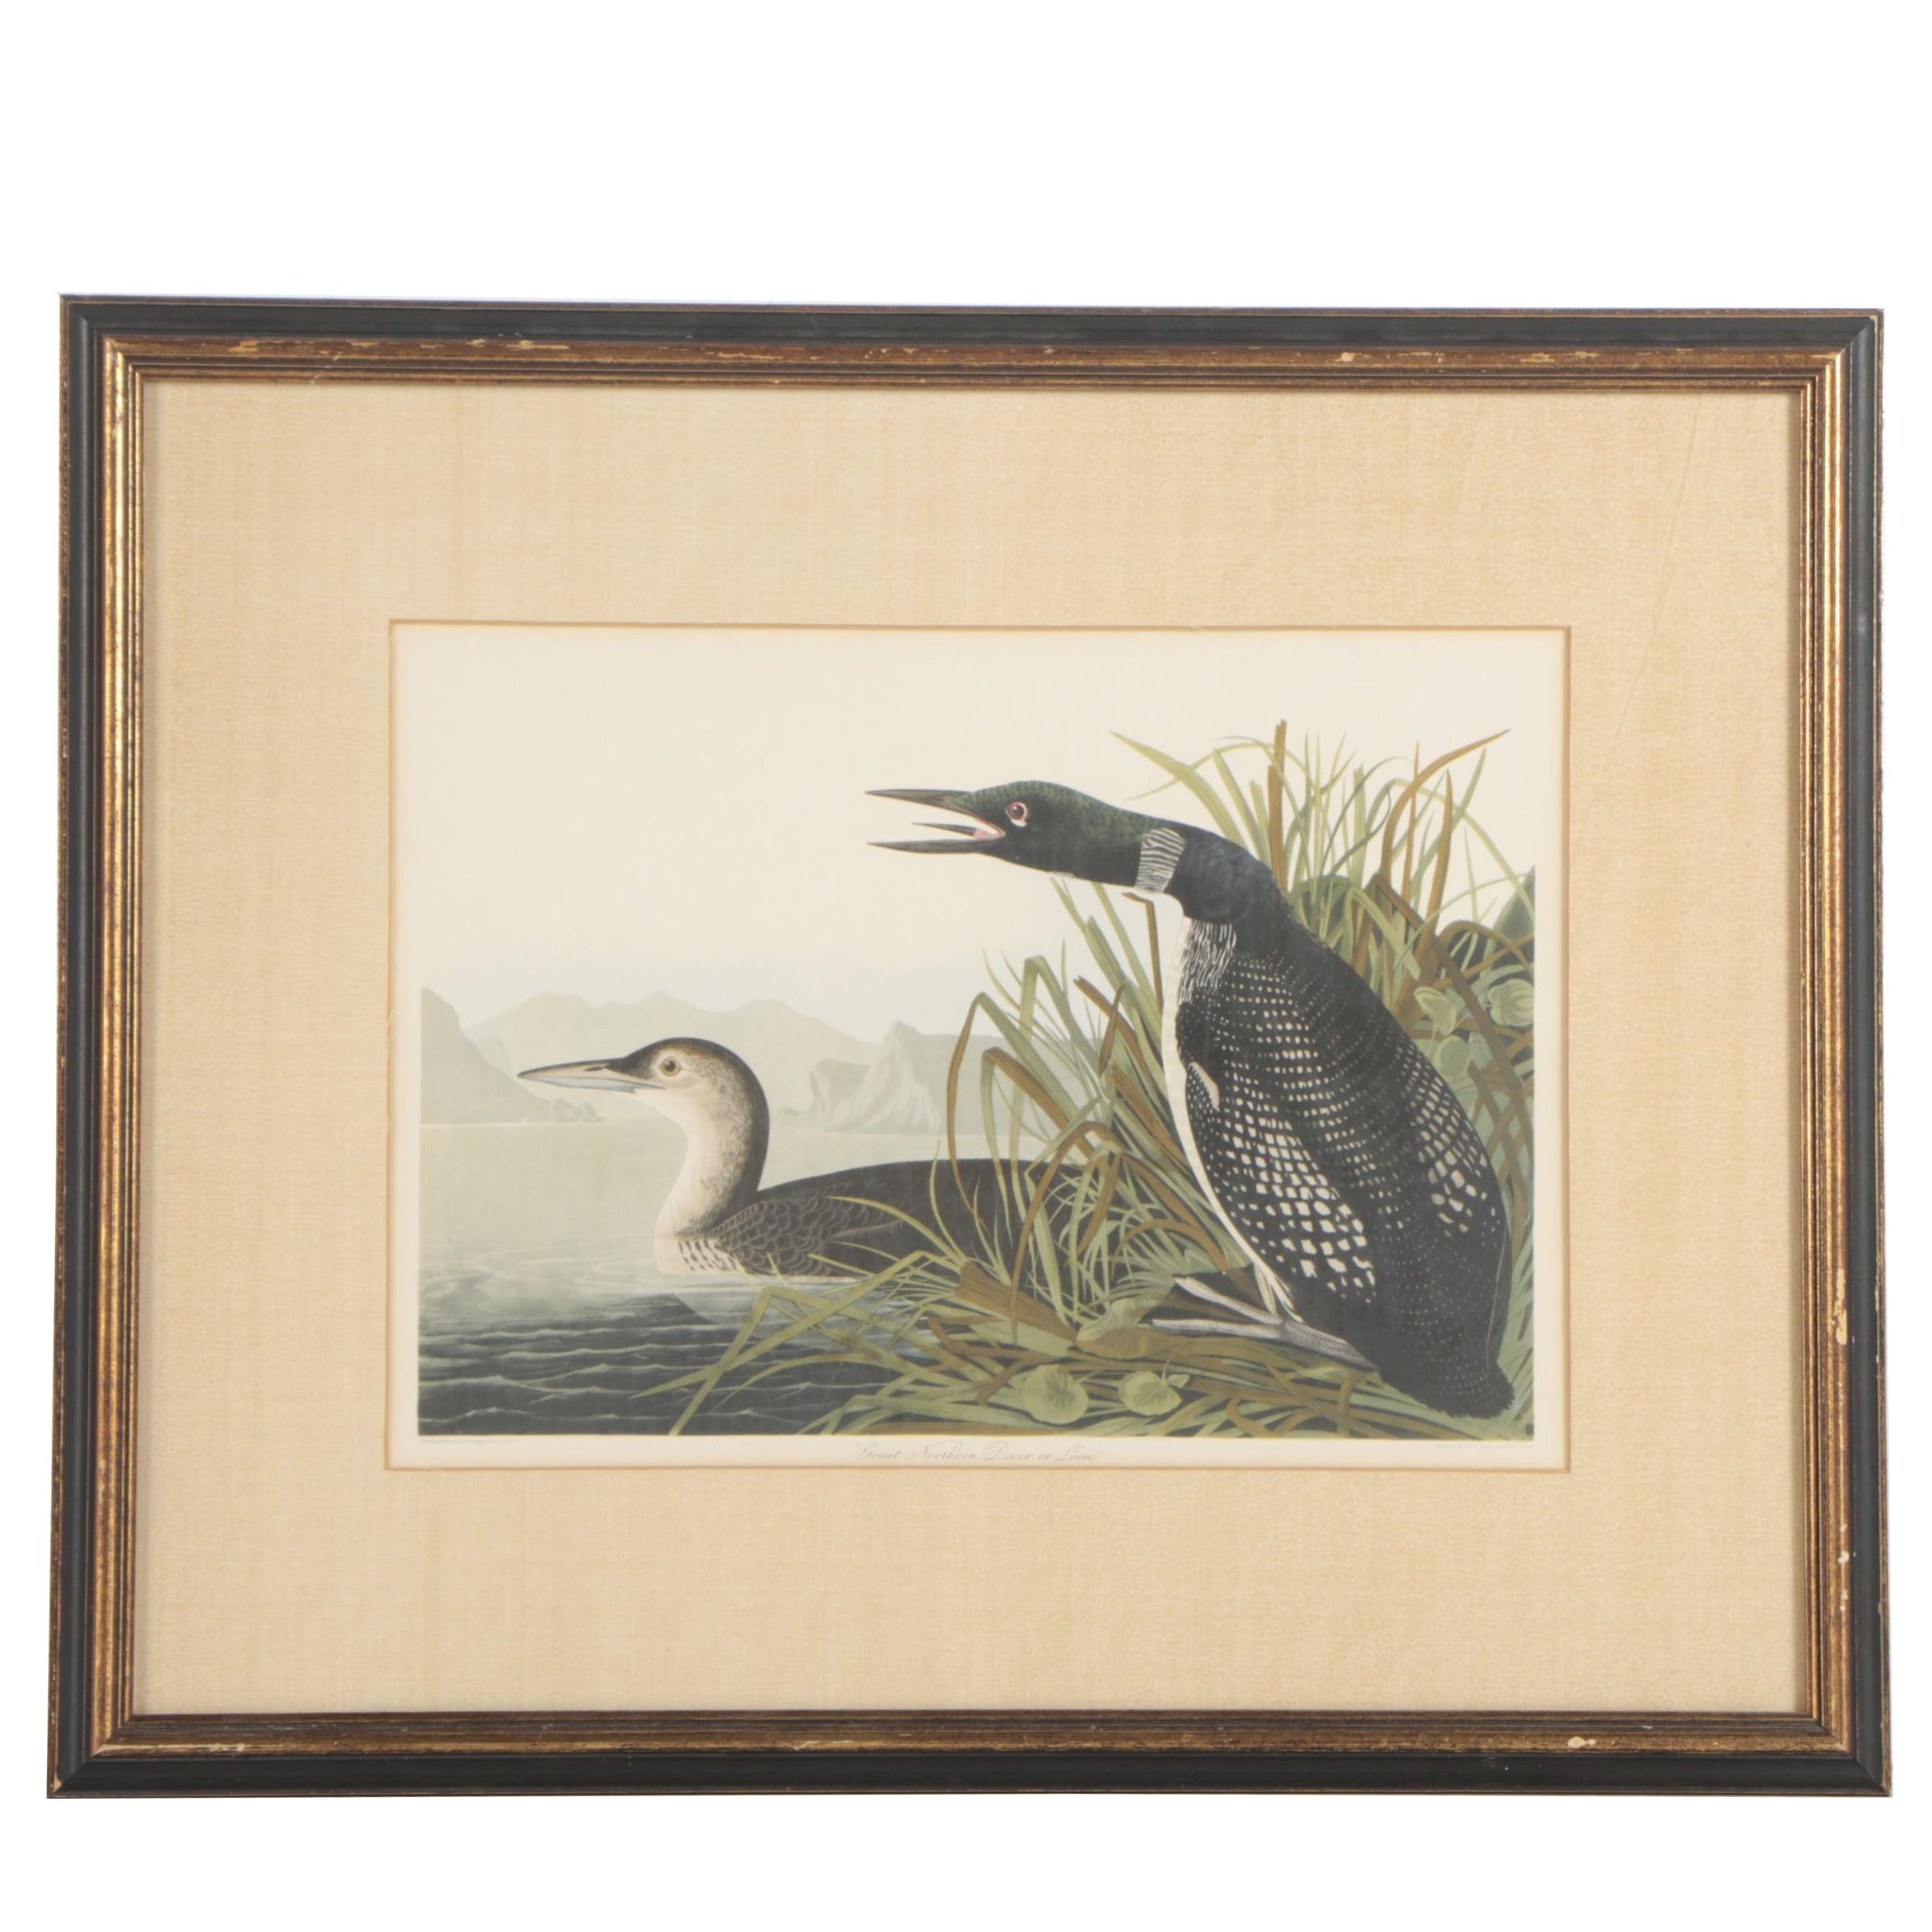 """Offset Lithograph after J.J Audubon """"Great Northern Diver or Loon"""""""